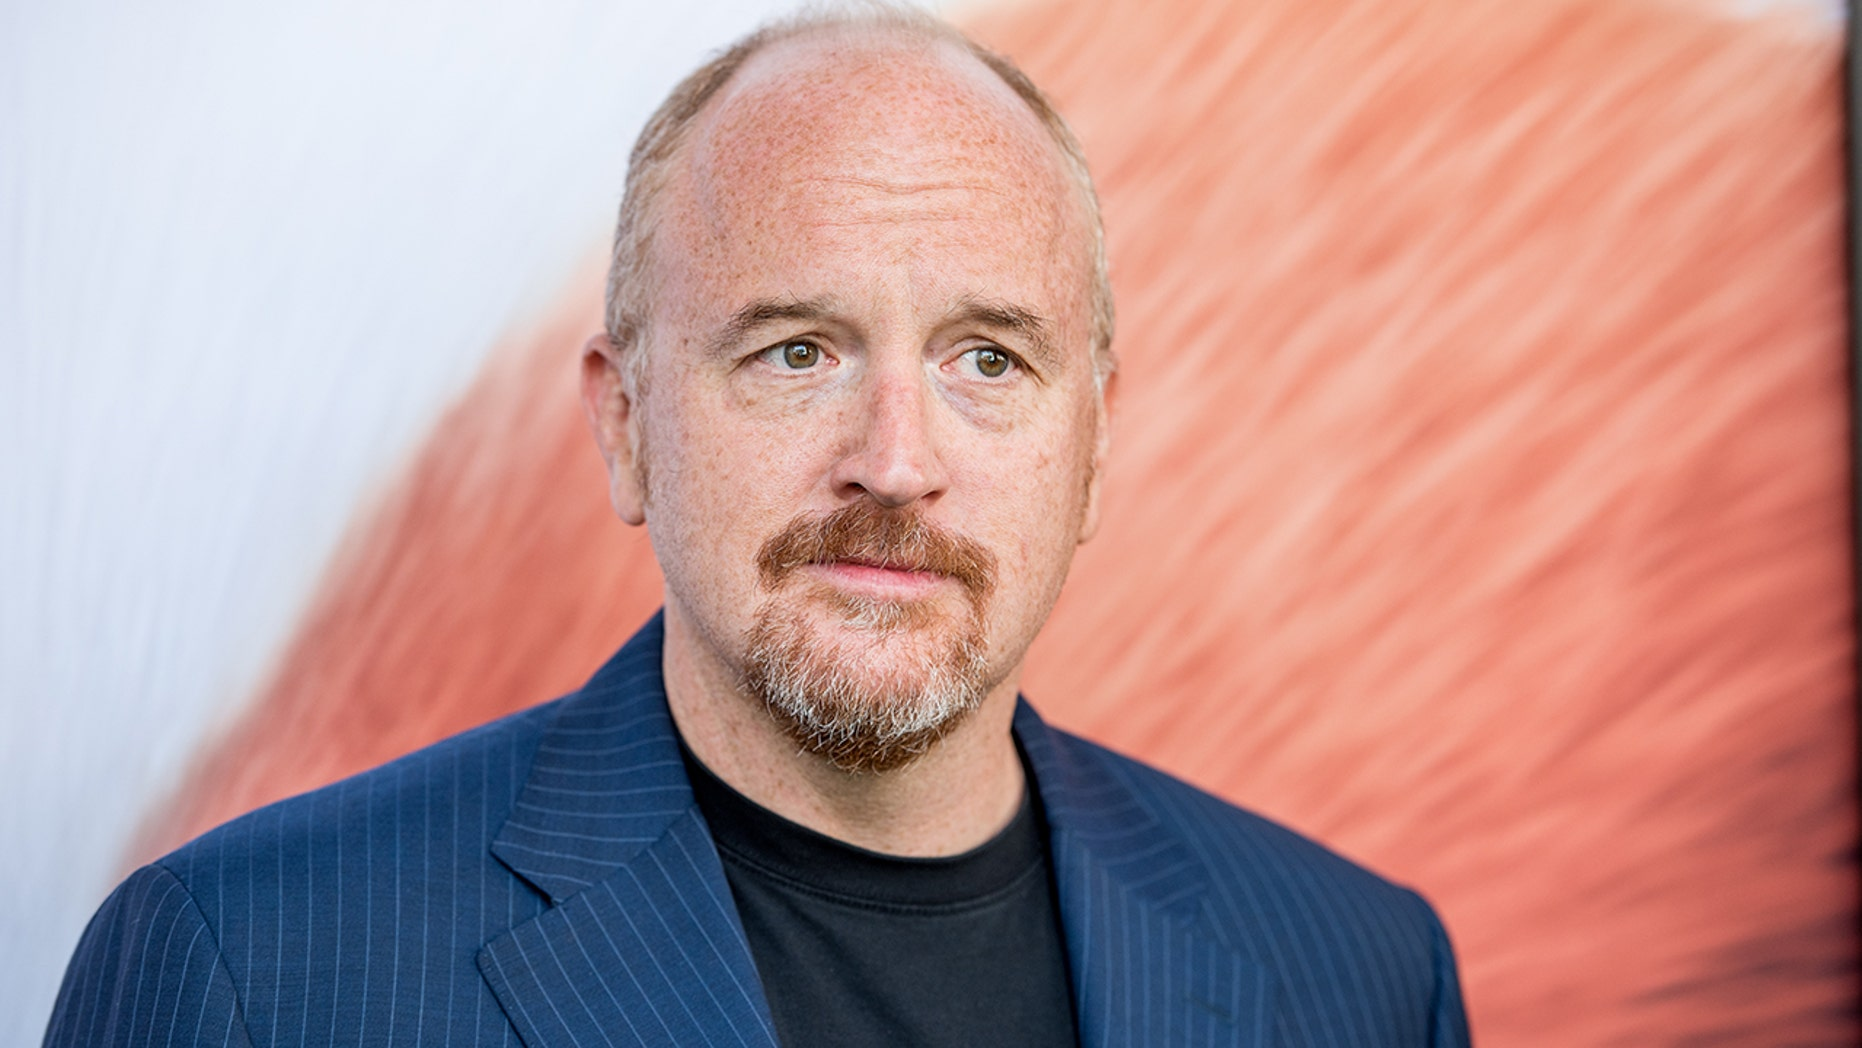 FILE: Louis C.K. at a New York premiere in June 2016. (Photo by Roy Rochlin/FilmMagic)